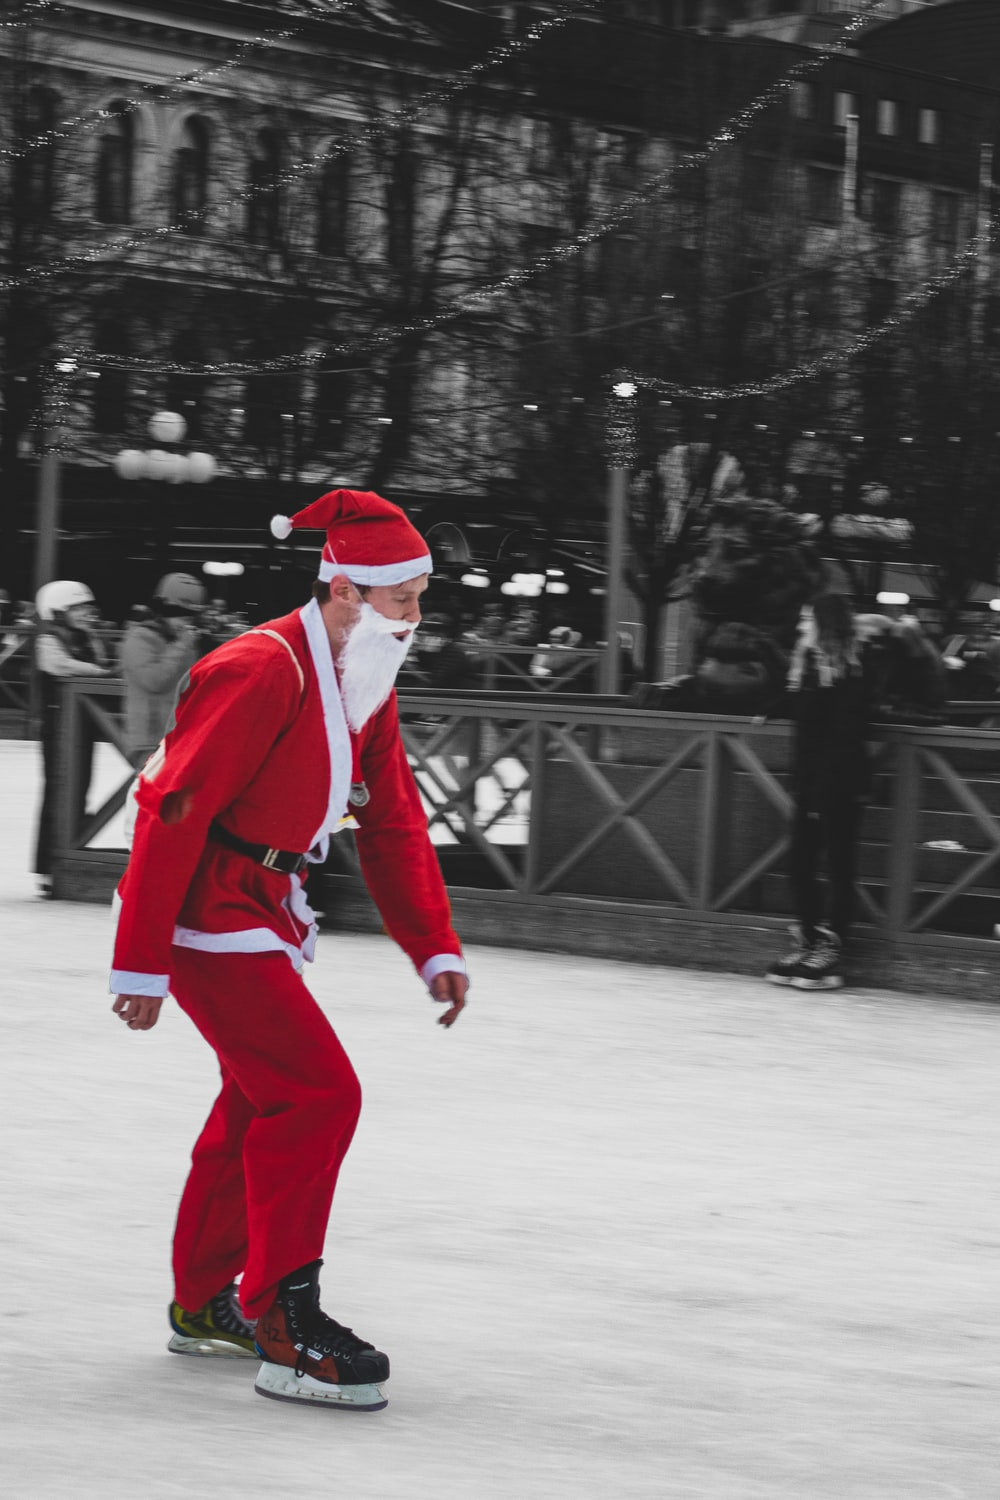 man wearing santa suit while using snow skin boots